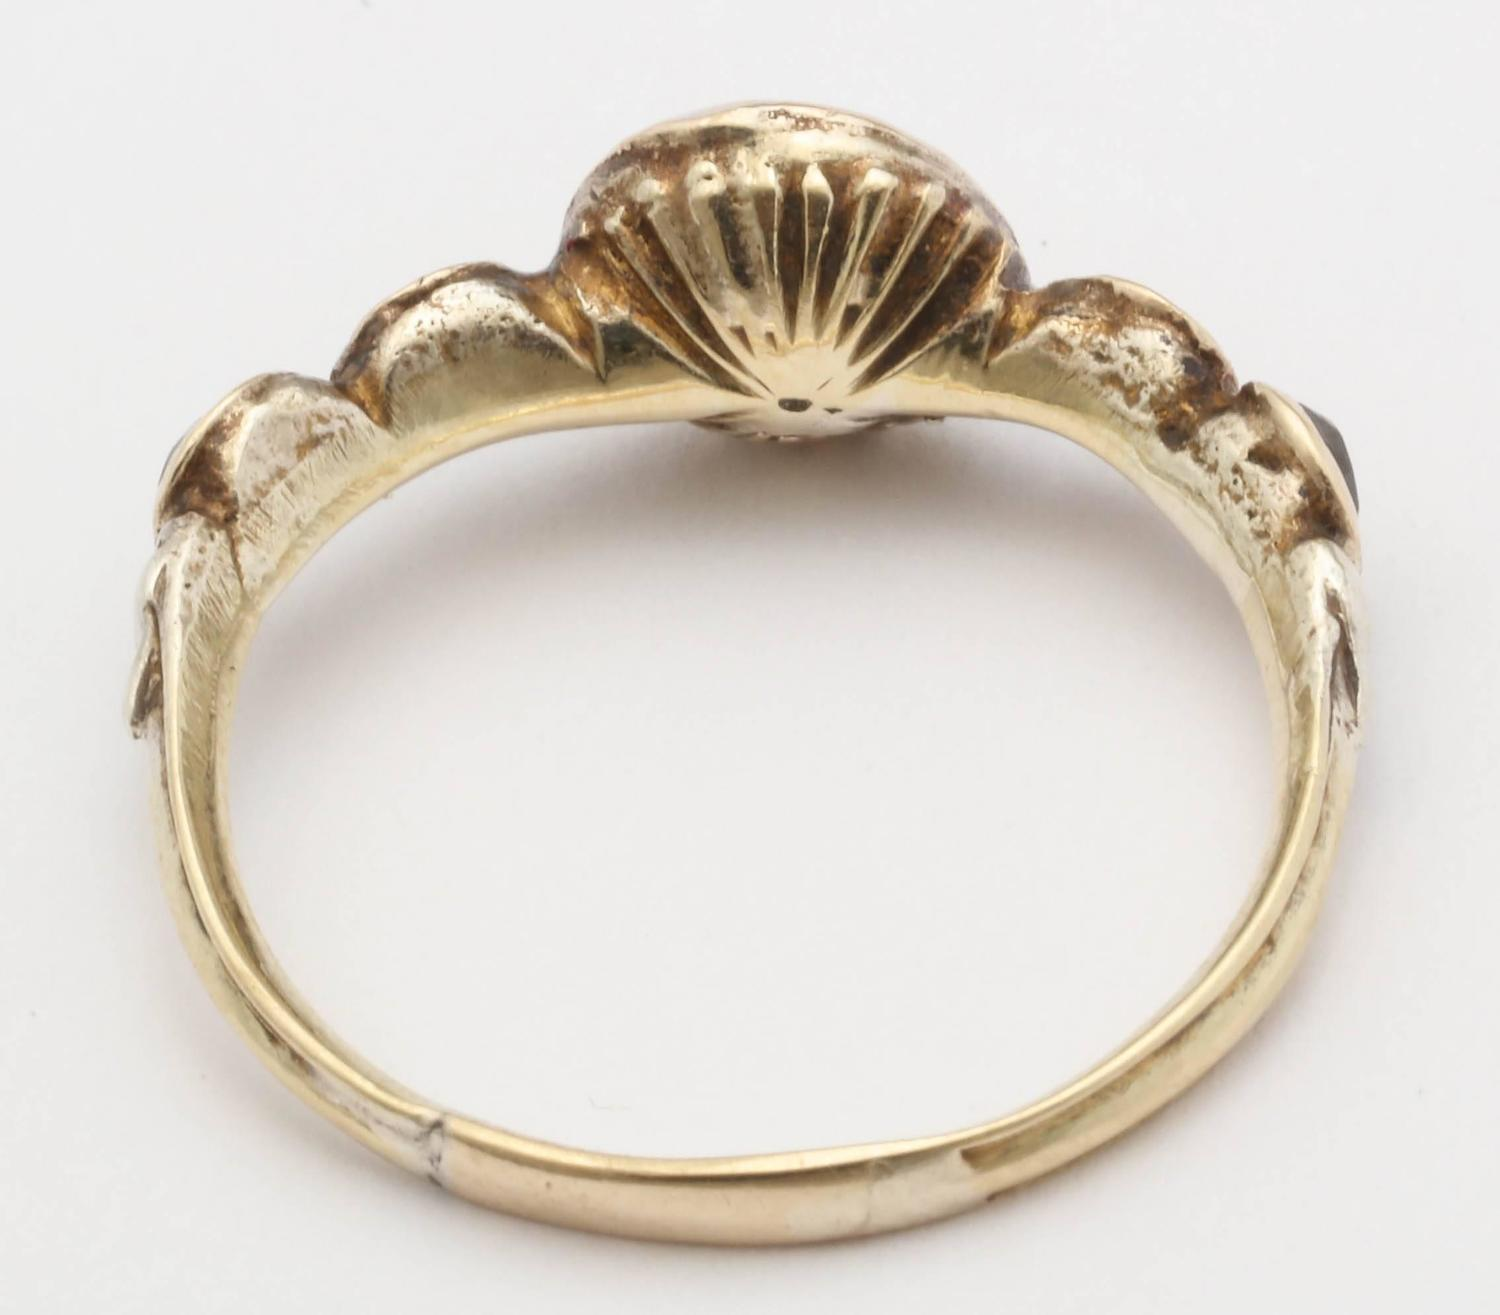 antique georgian chrysoprase gold ring for sale at 1stdibs